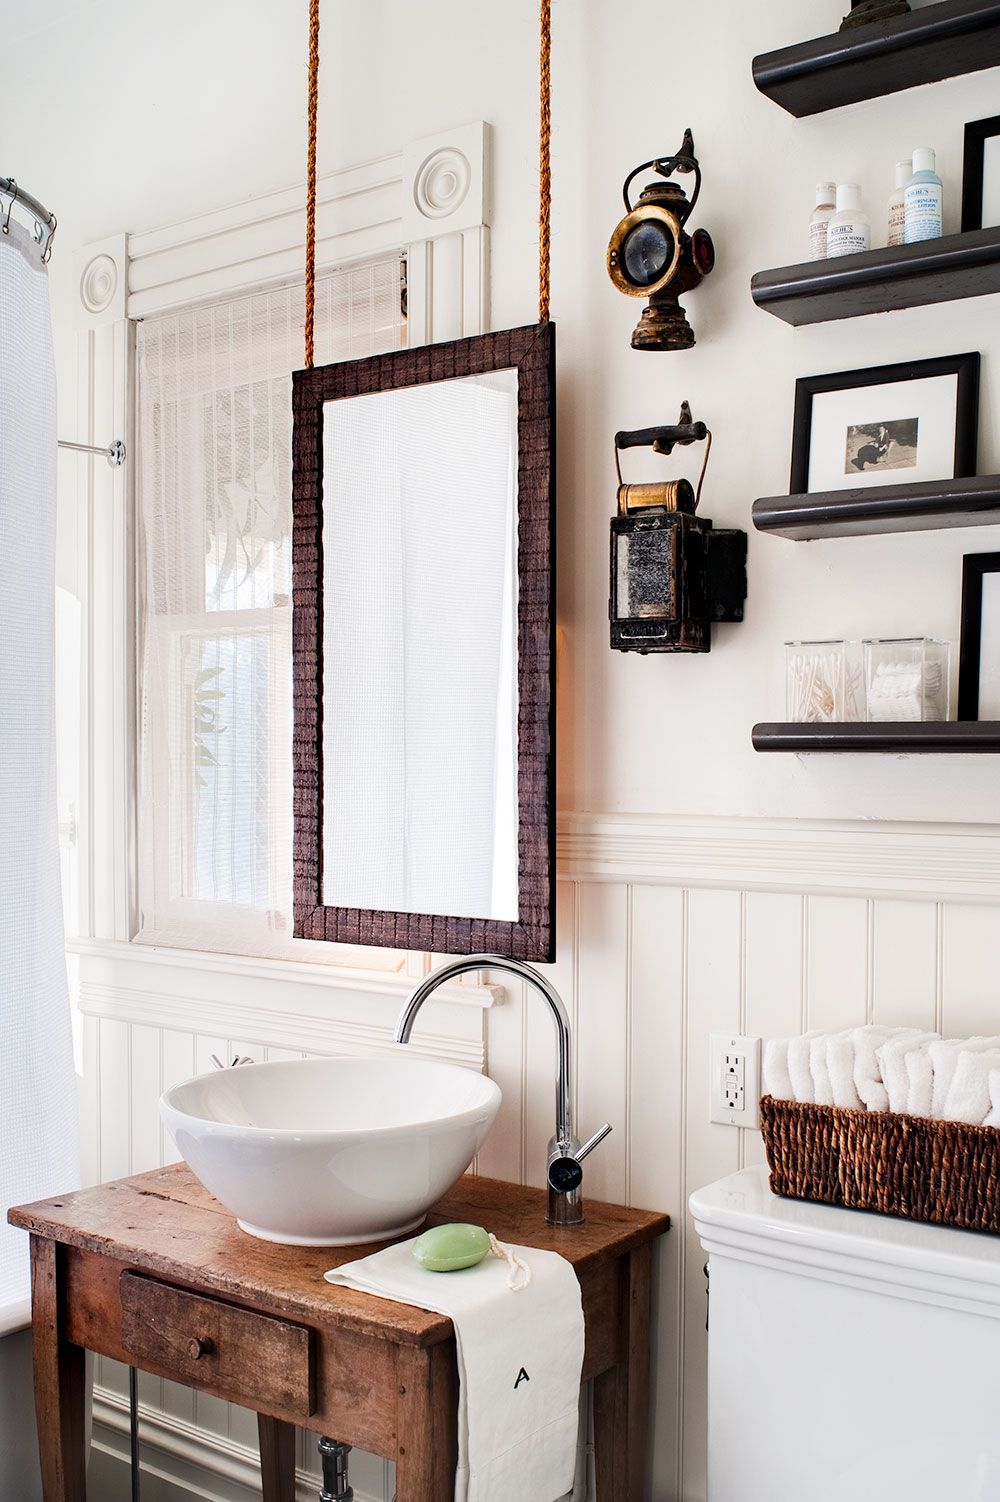 Toto-sink-San-Francisco-Dogpatch-Residence-Antonio-Martins-Interior ...